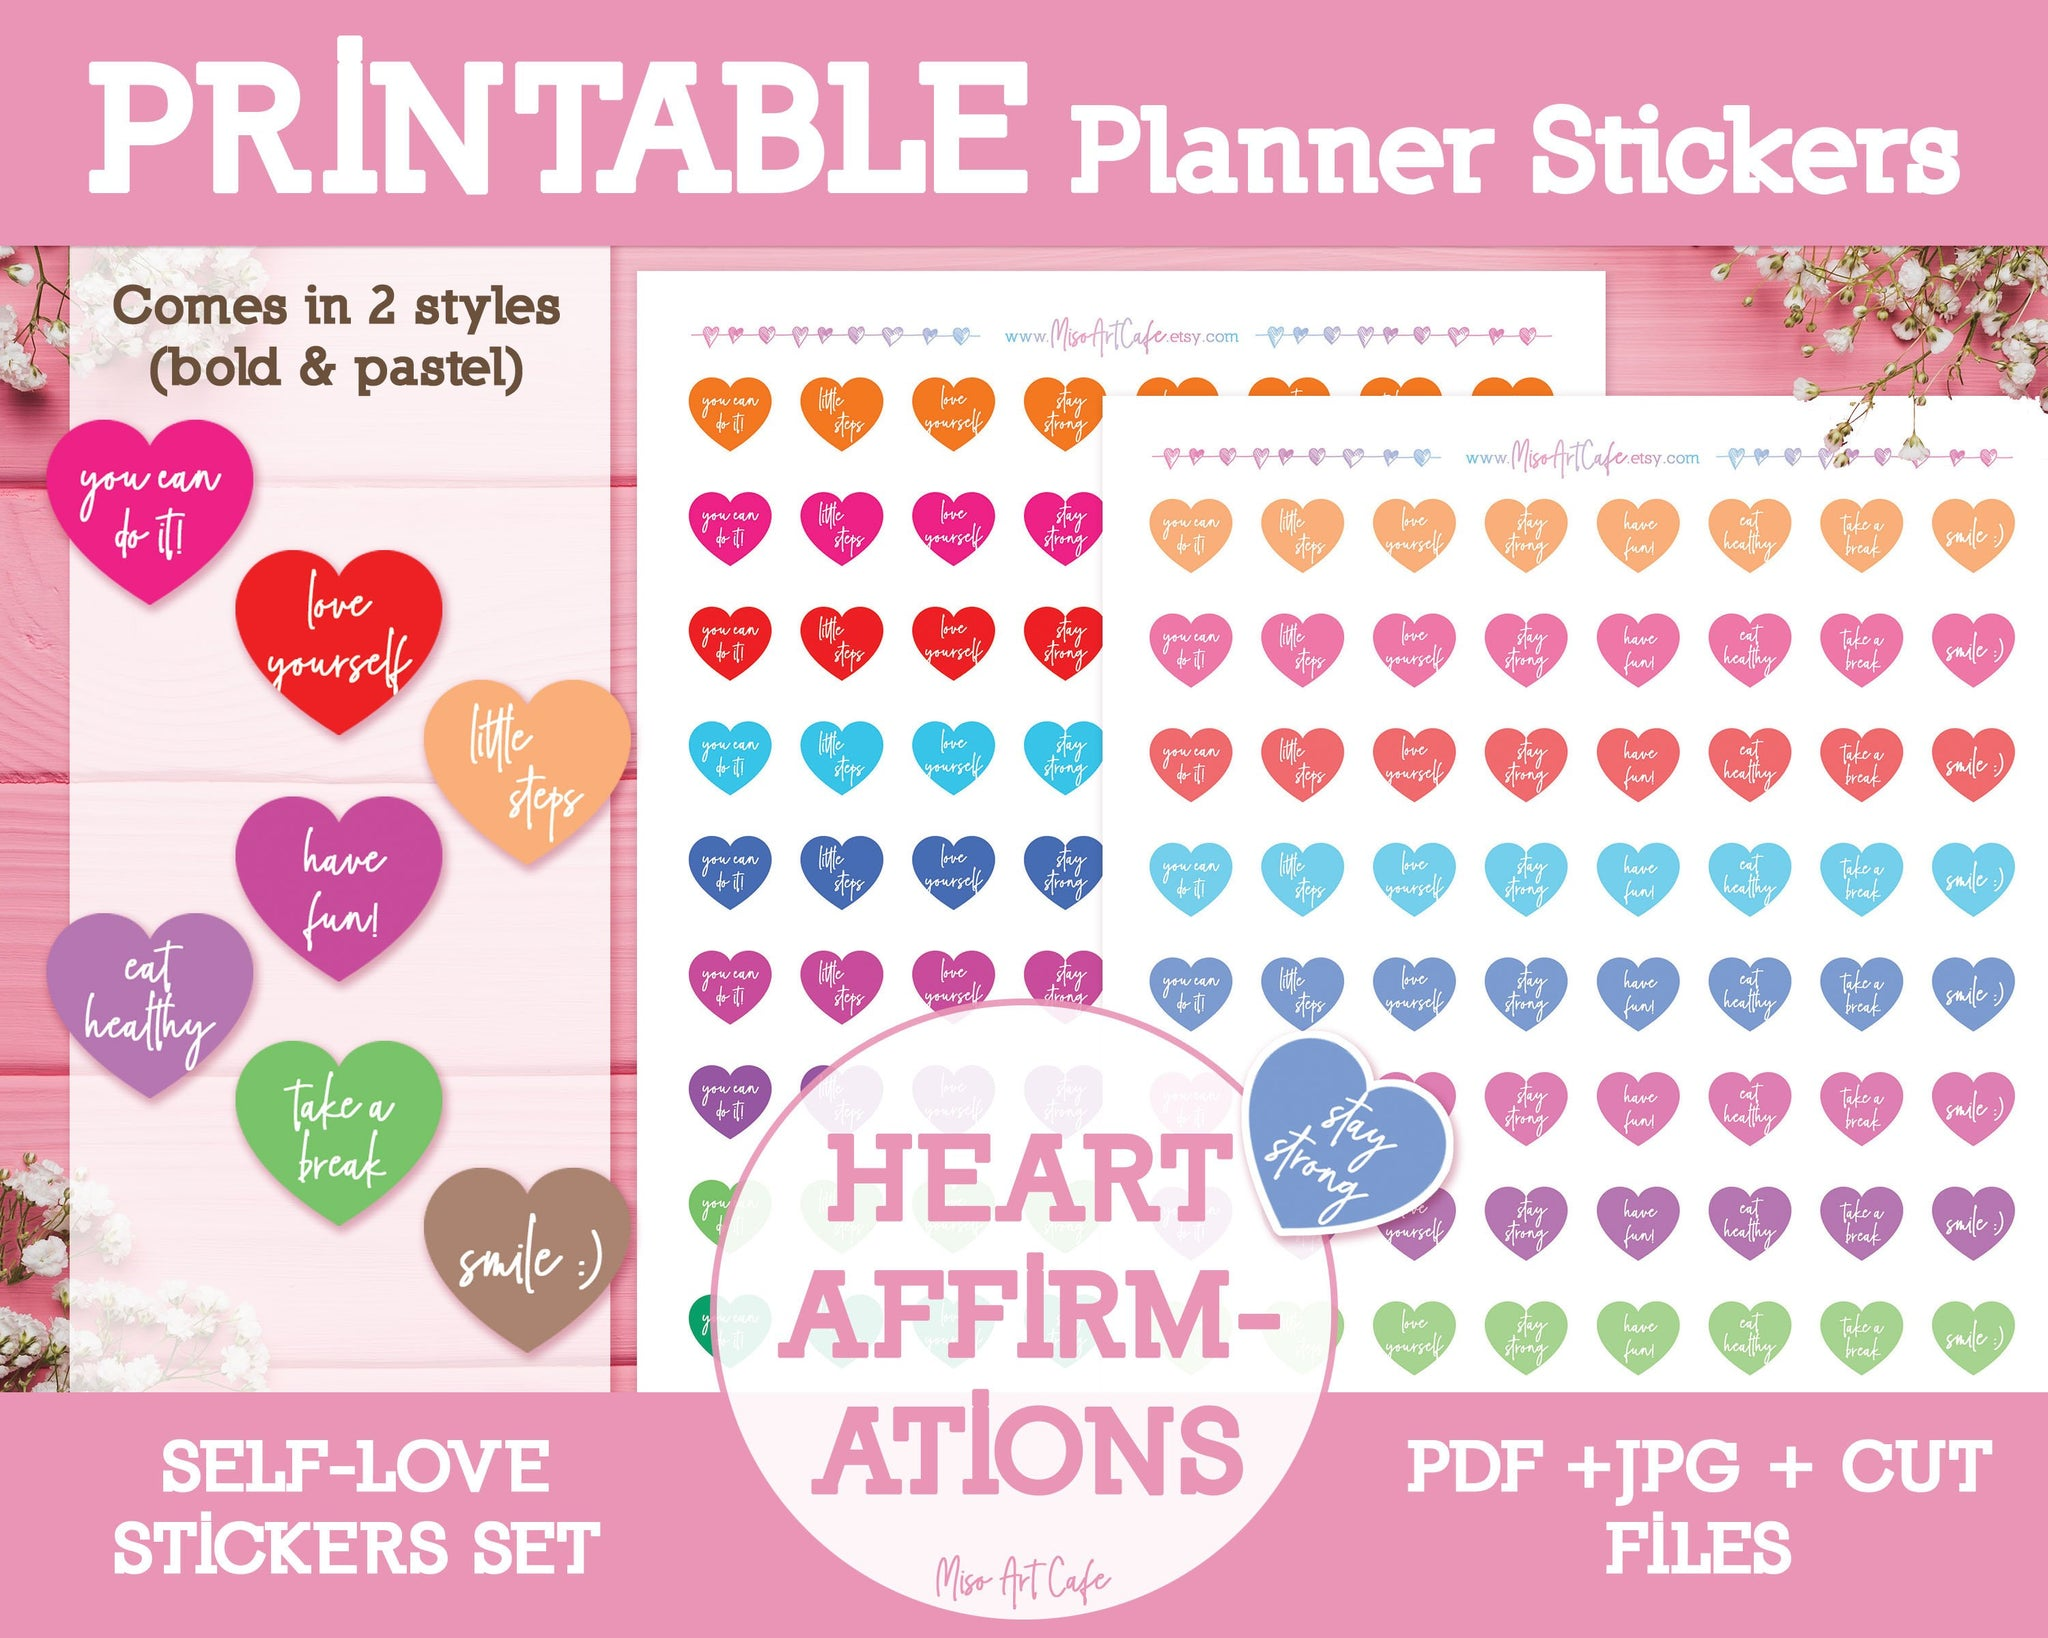 Printable Heart Affirmations - Self Love Planner Stickers - Miso Art Cafe